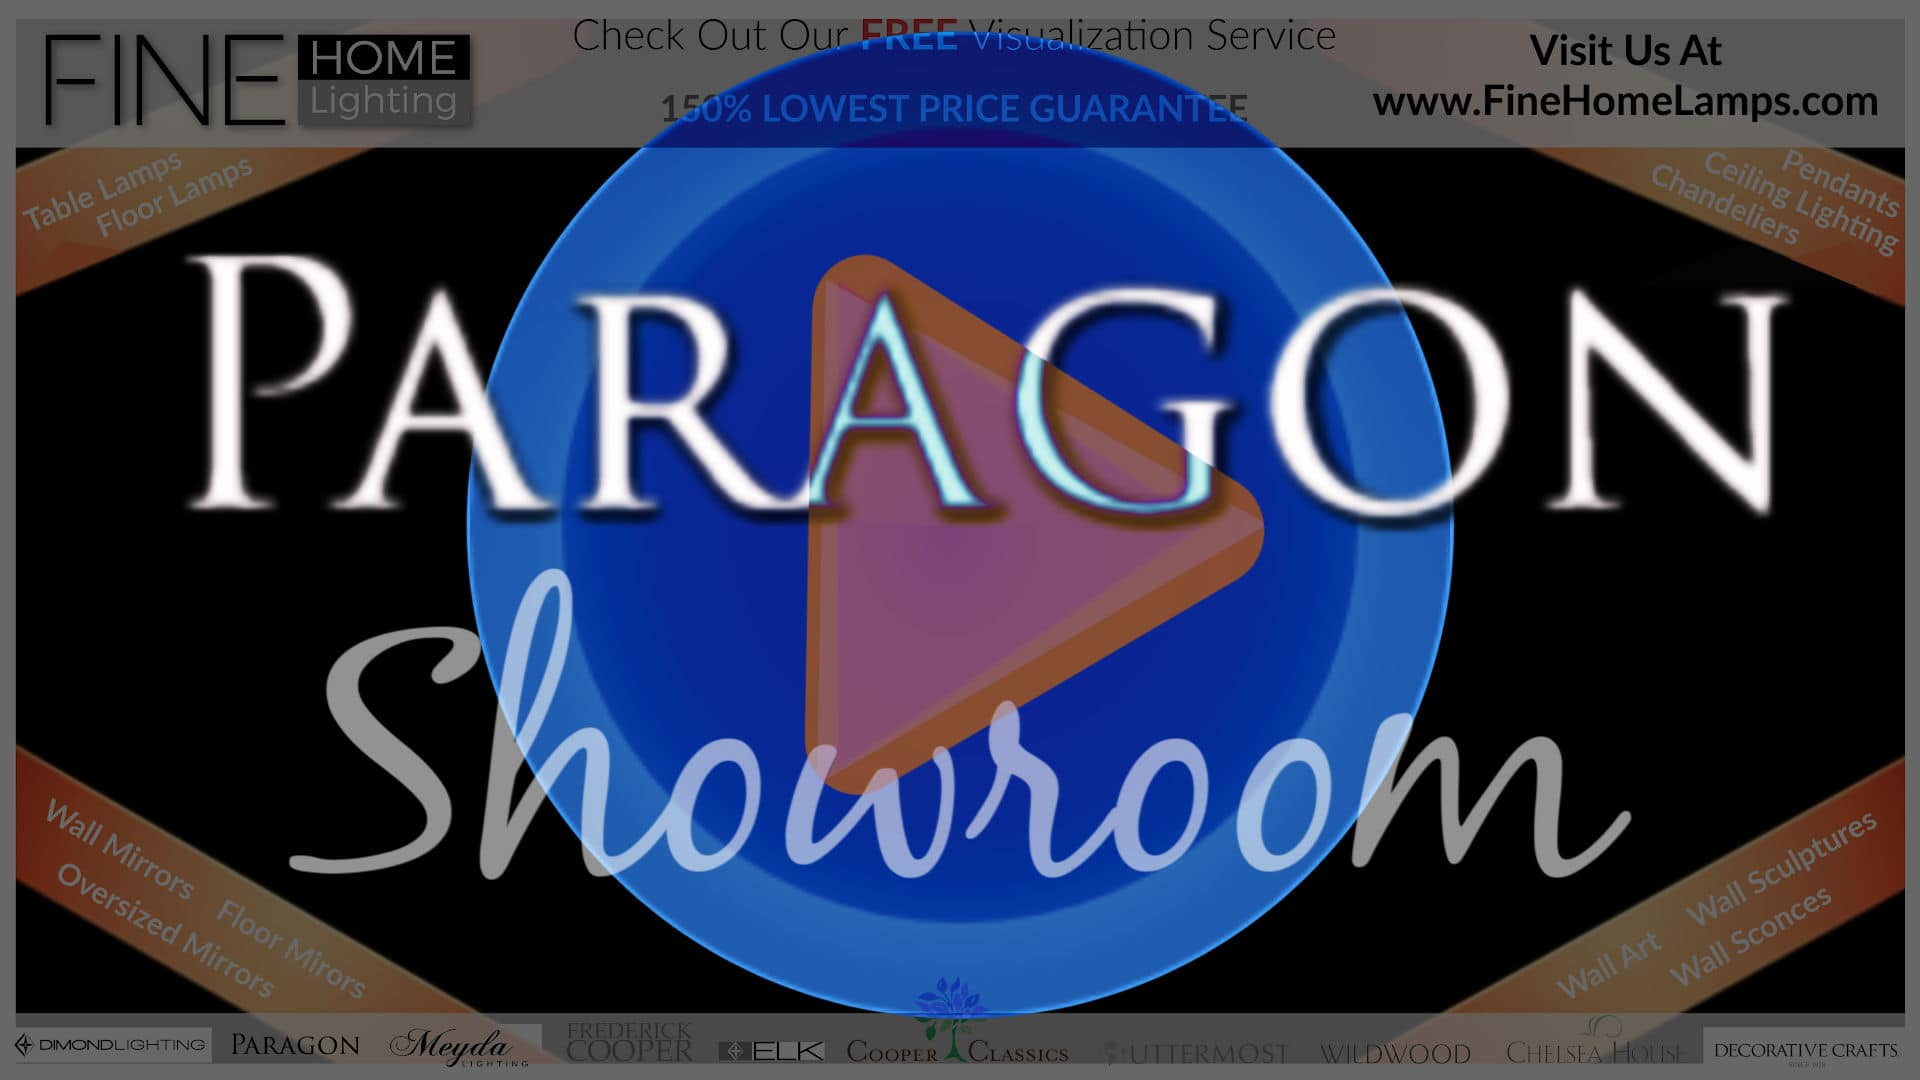 Paragon-Showroom-Thanks-for-watching-this-video-Get-an-additional-15-percent-off-your-next-purchase-Use-Coupon-Code-VIDEO